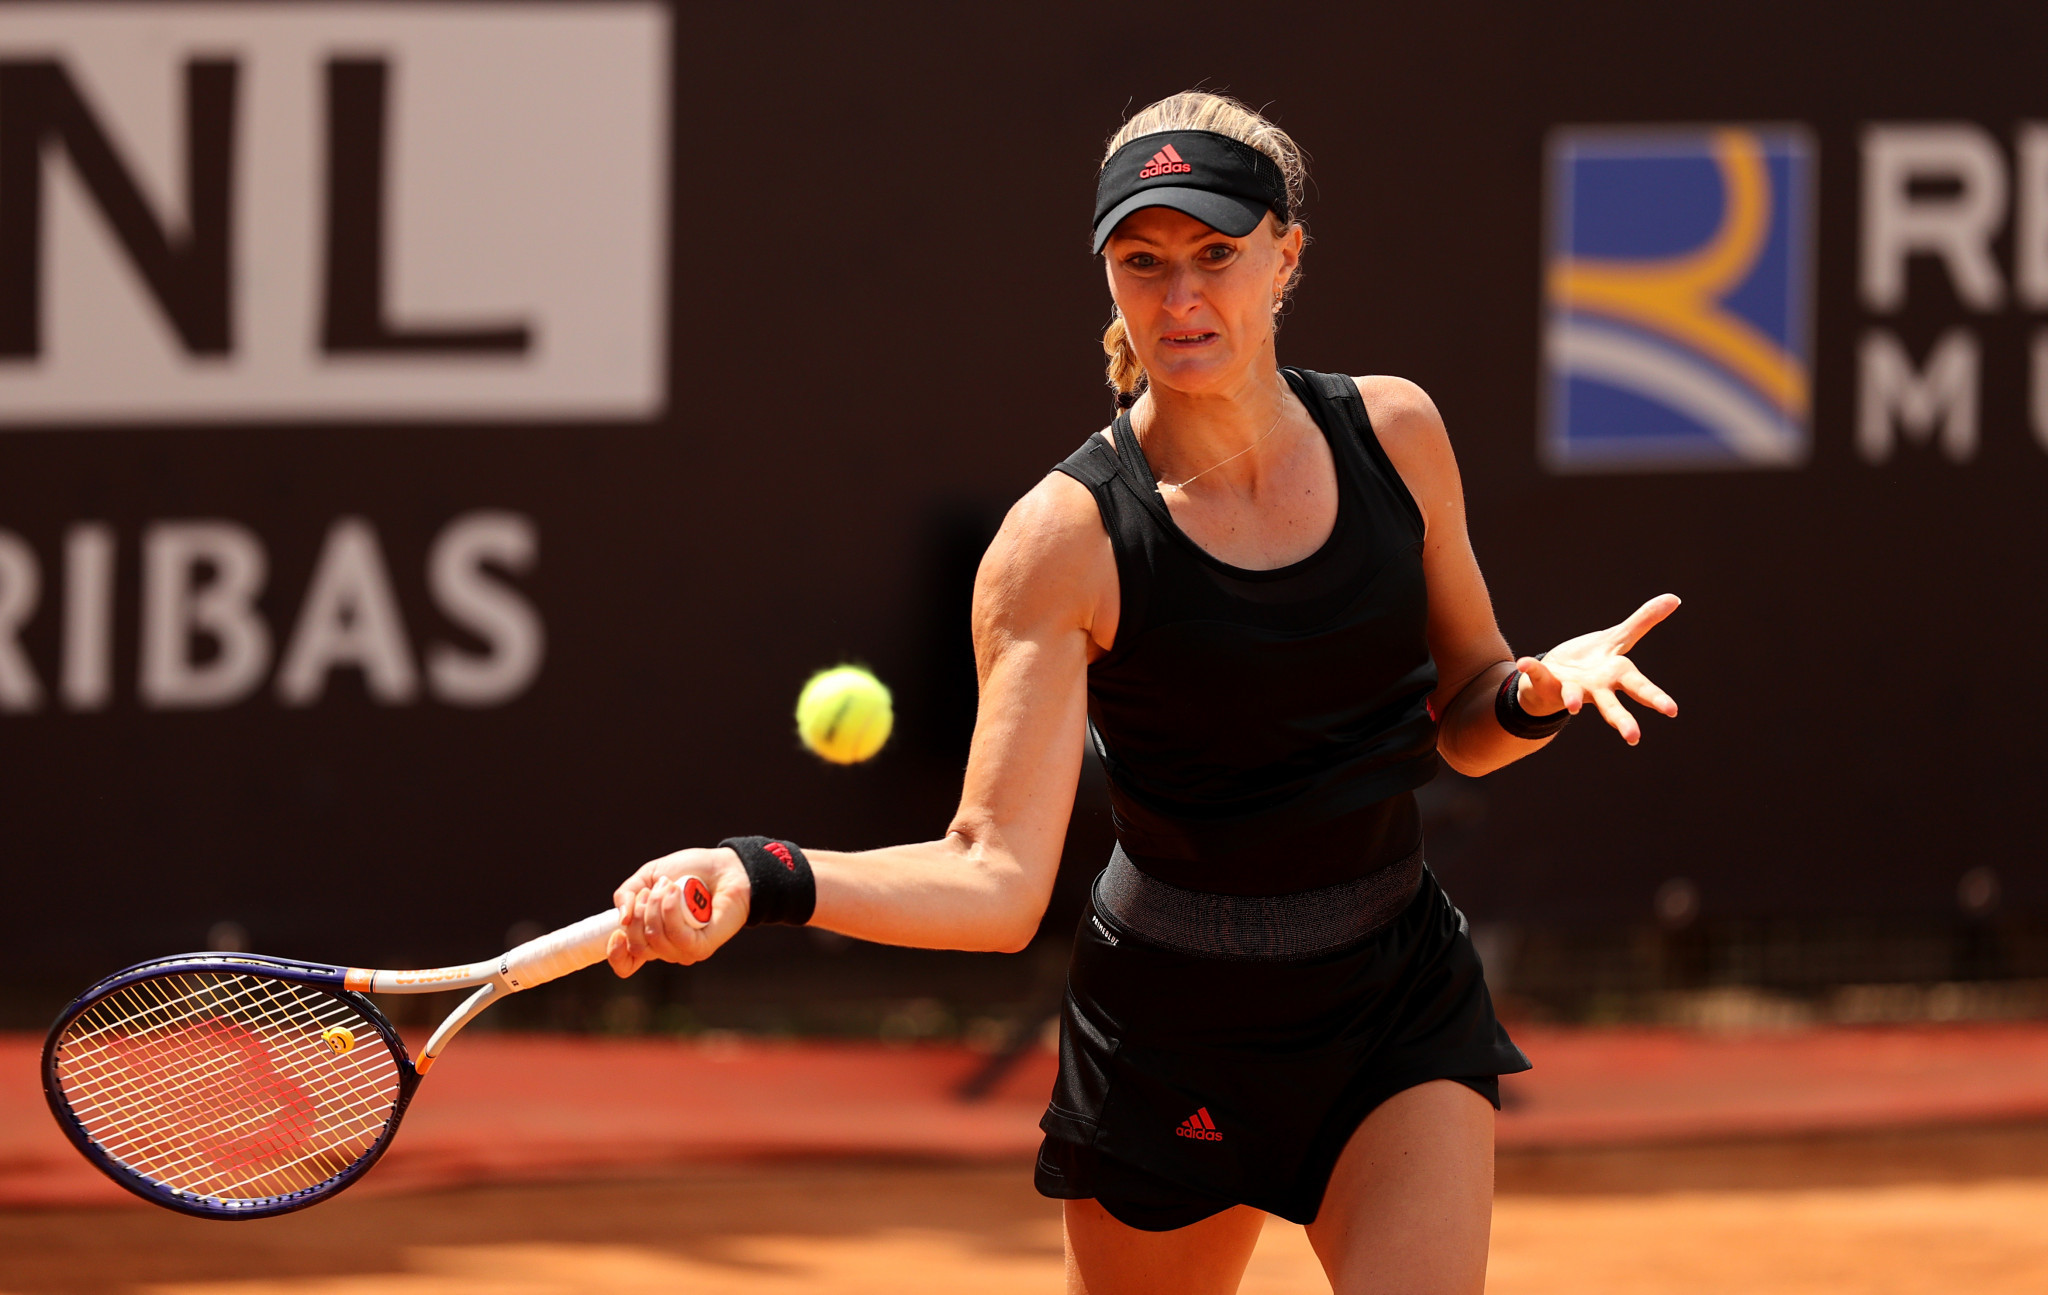 Kristina Mladenovic gained revenge against Belinda Bencic with an impressive performance in Rome ©Getty Images